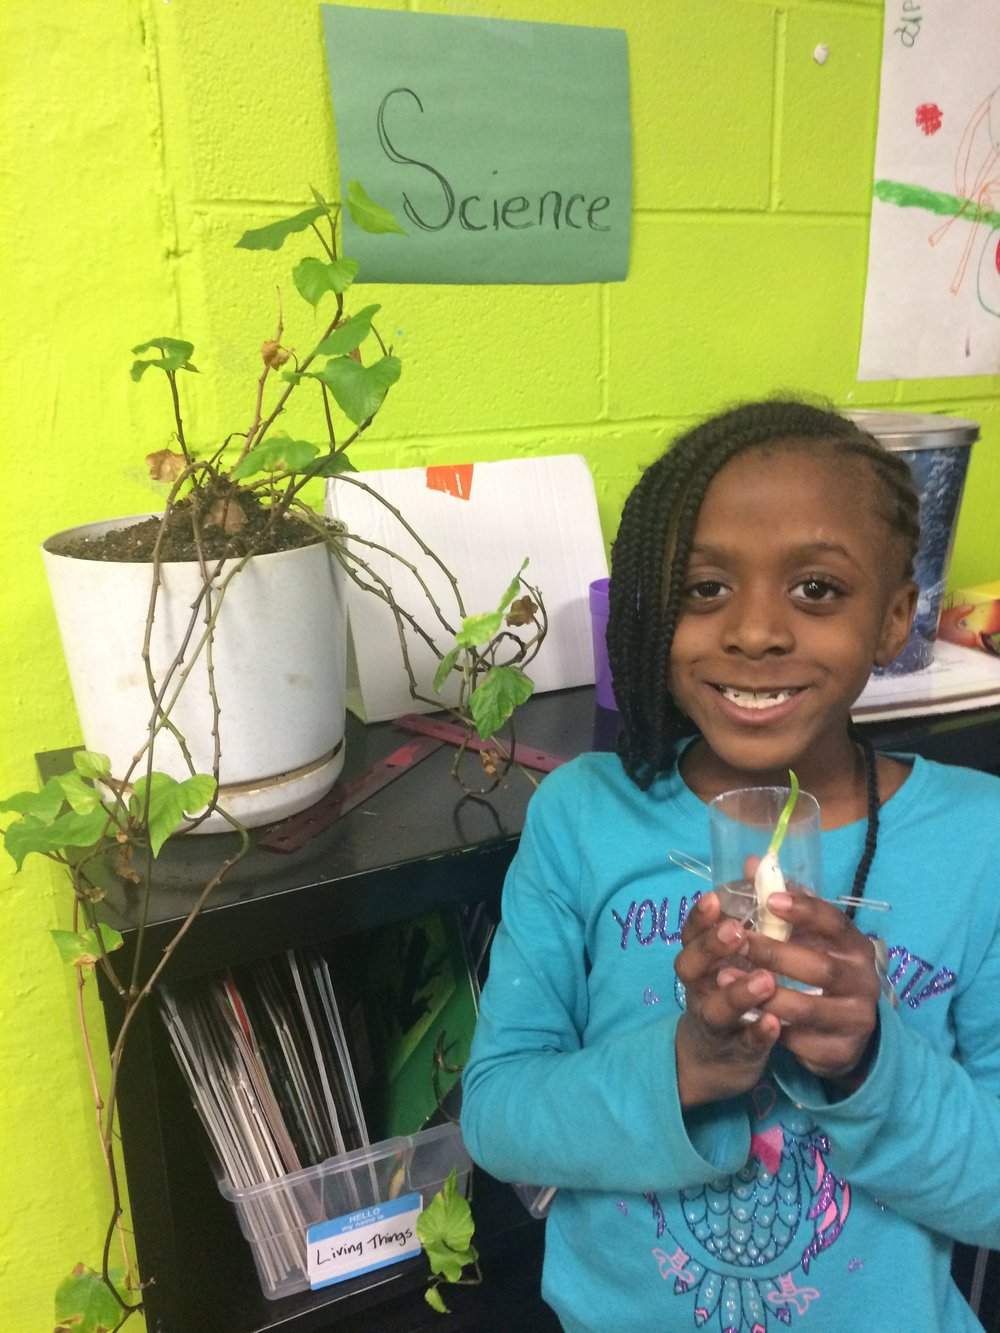 Post Idea - How have you seen our children grow in program?Click Below to Download Photohttps://bit.ly/2r3oTig